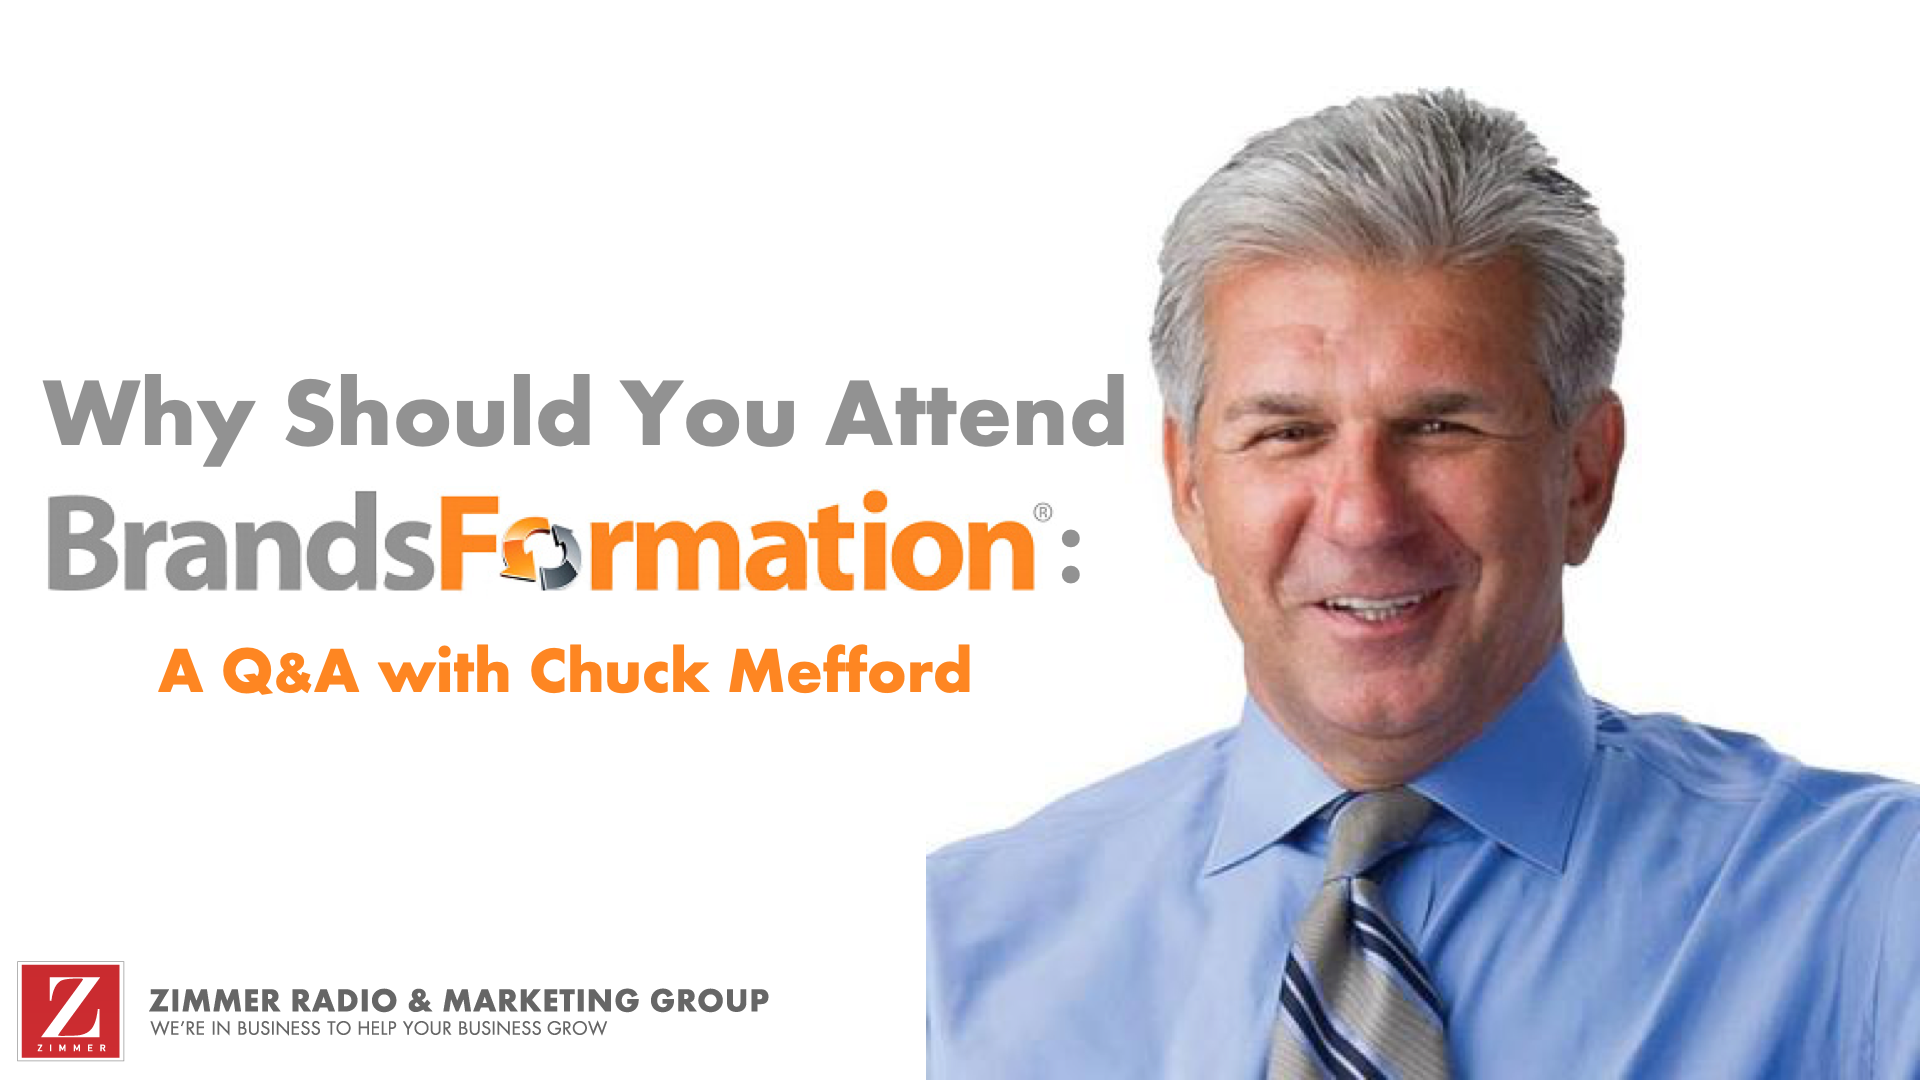 Why-Should-You-Attend-BrandsFormation-Chuck-Mefford